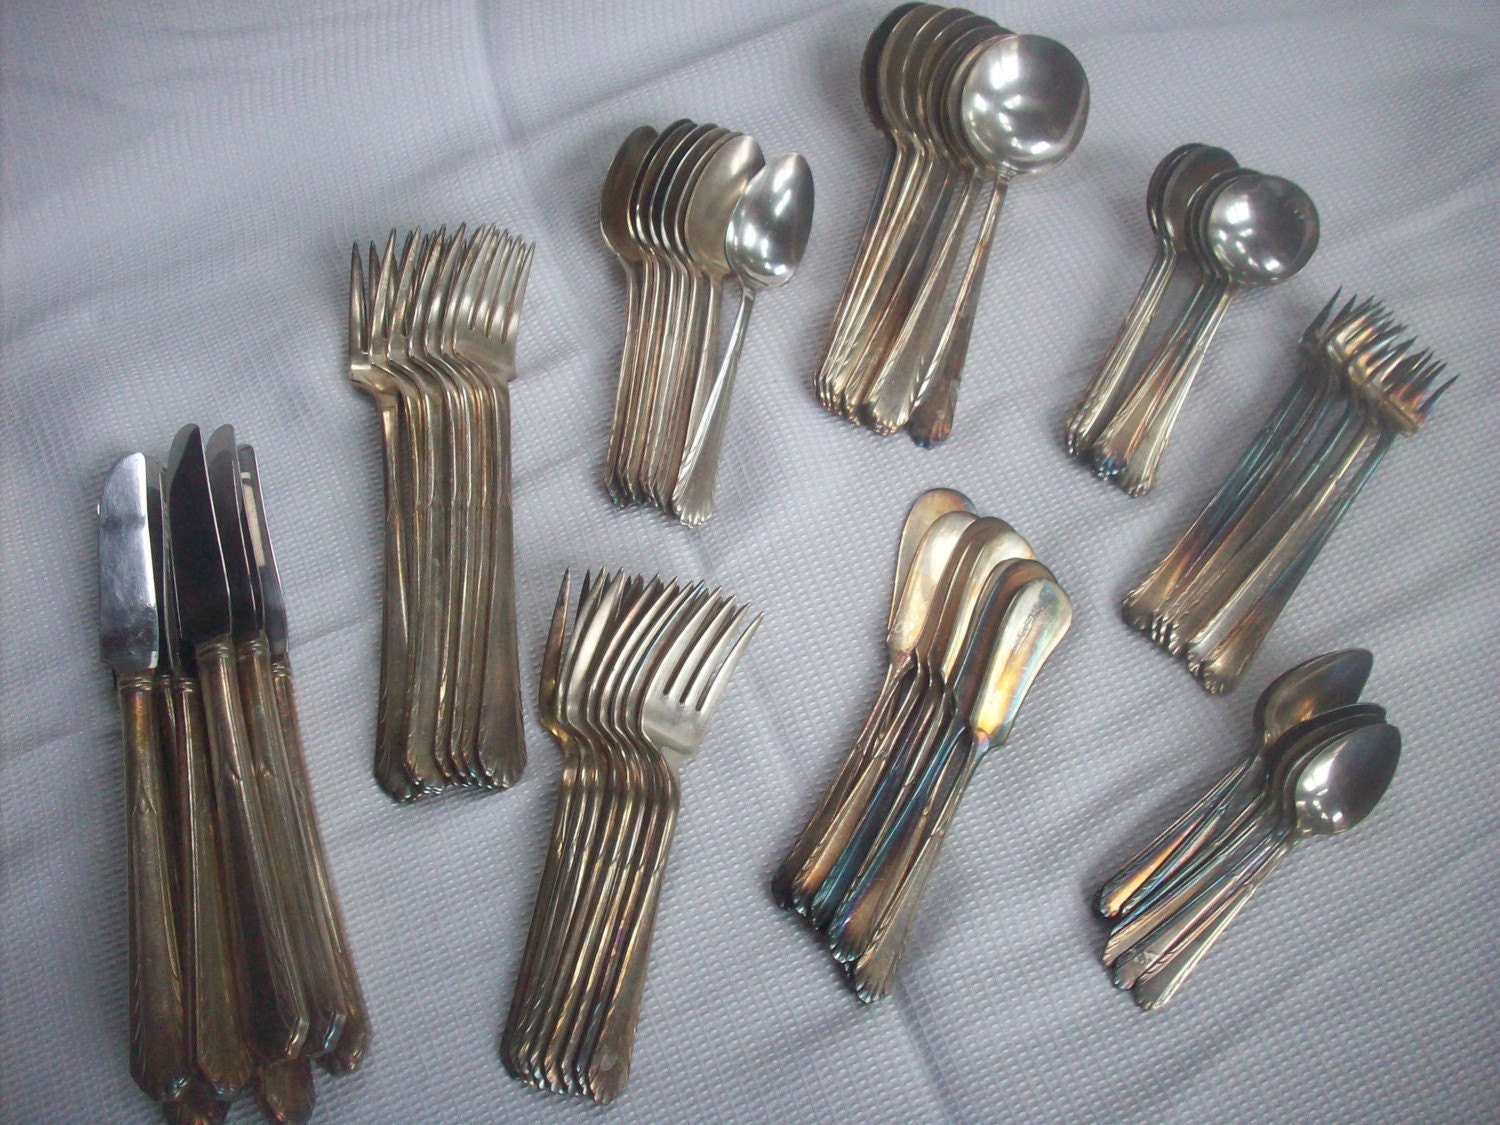 Vintage Silverware Set 8 Place Settings National Silver Co